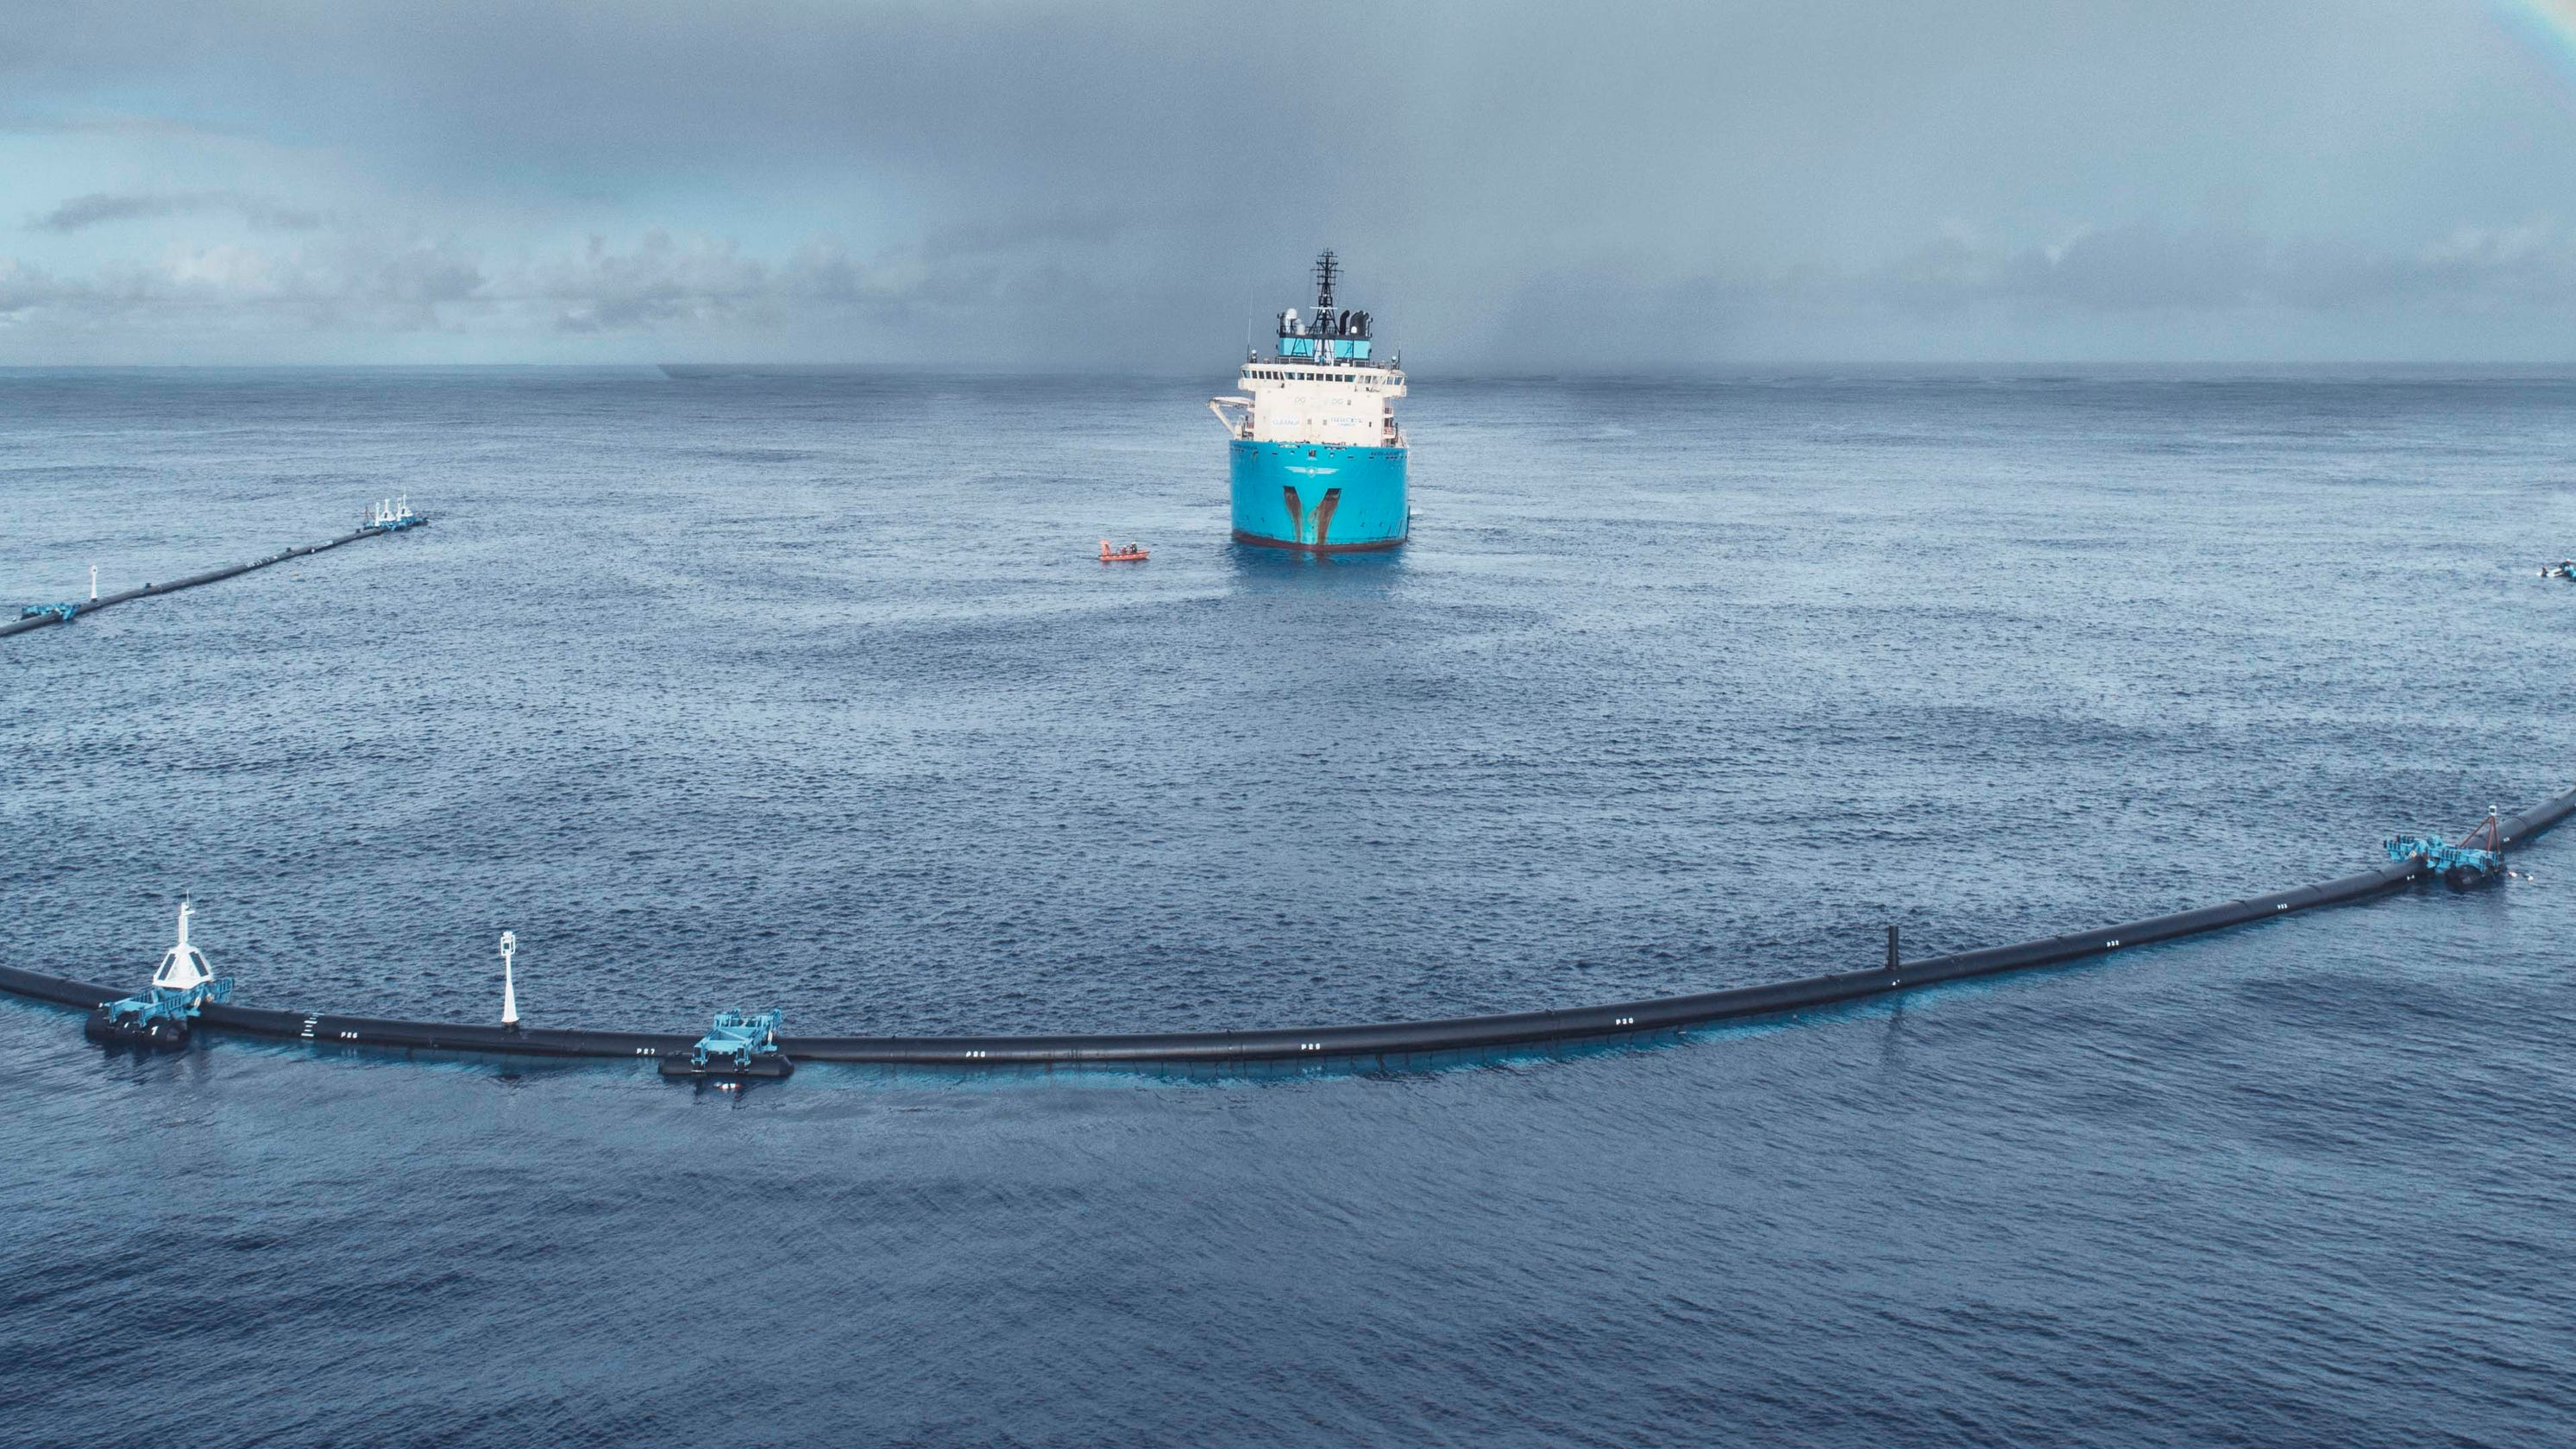 Ocean Cleanup device in Great Pacific Garbage Patch breaks, will be towed back to port